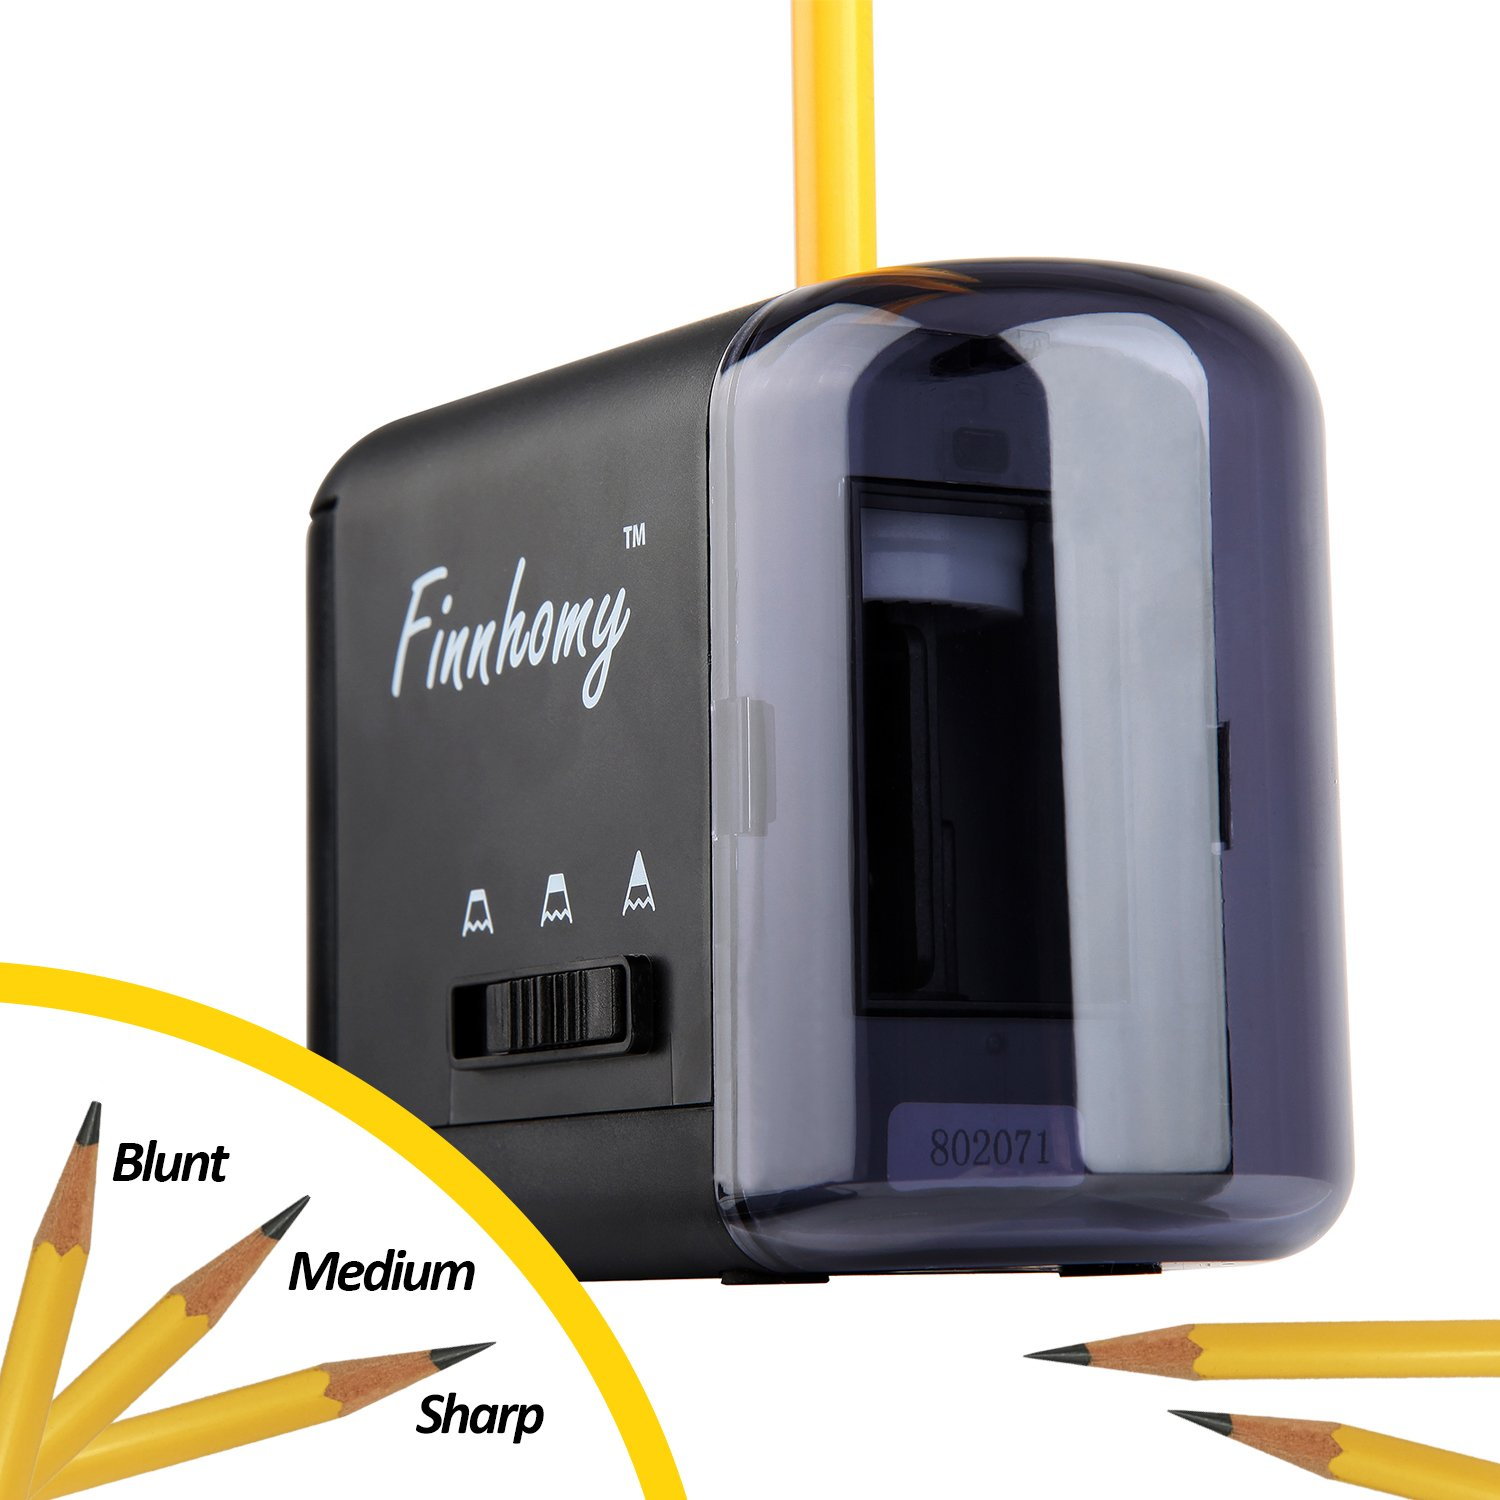 Finnhomy Electric & Battery Operated Pencil Sharpener for Kids Home School Classroom Office, Art & Craft, Works w/Lead & Colored Pencils Automatic Pencil Cutter - Black by Finnhomy